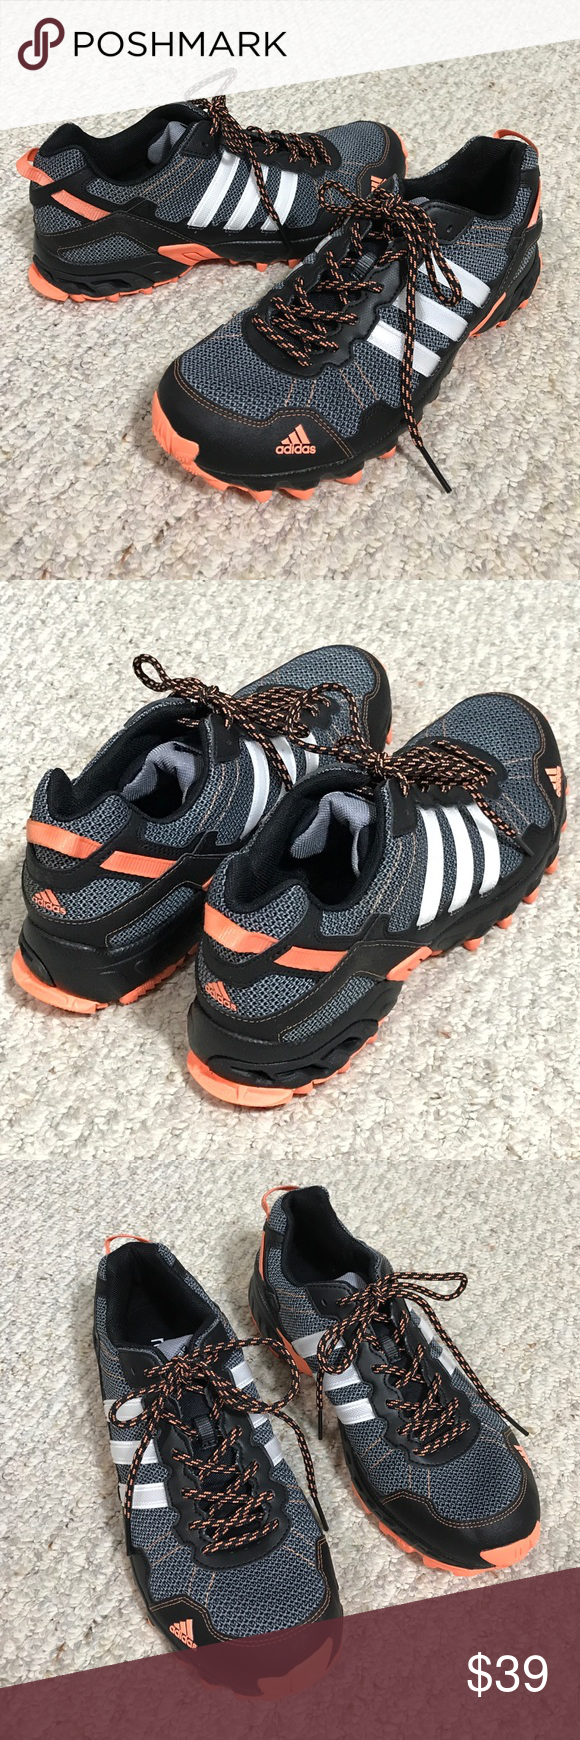 Adidas Running/Trail Shoes Excellent Condition! Men's trail/ off road performance running shoe. Light and comfortable. True to size 11. ❌Trades ❤️Bundle and save! No 👎lowball offers please!!! adidas Shoes Athletic Shoes